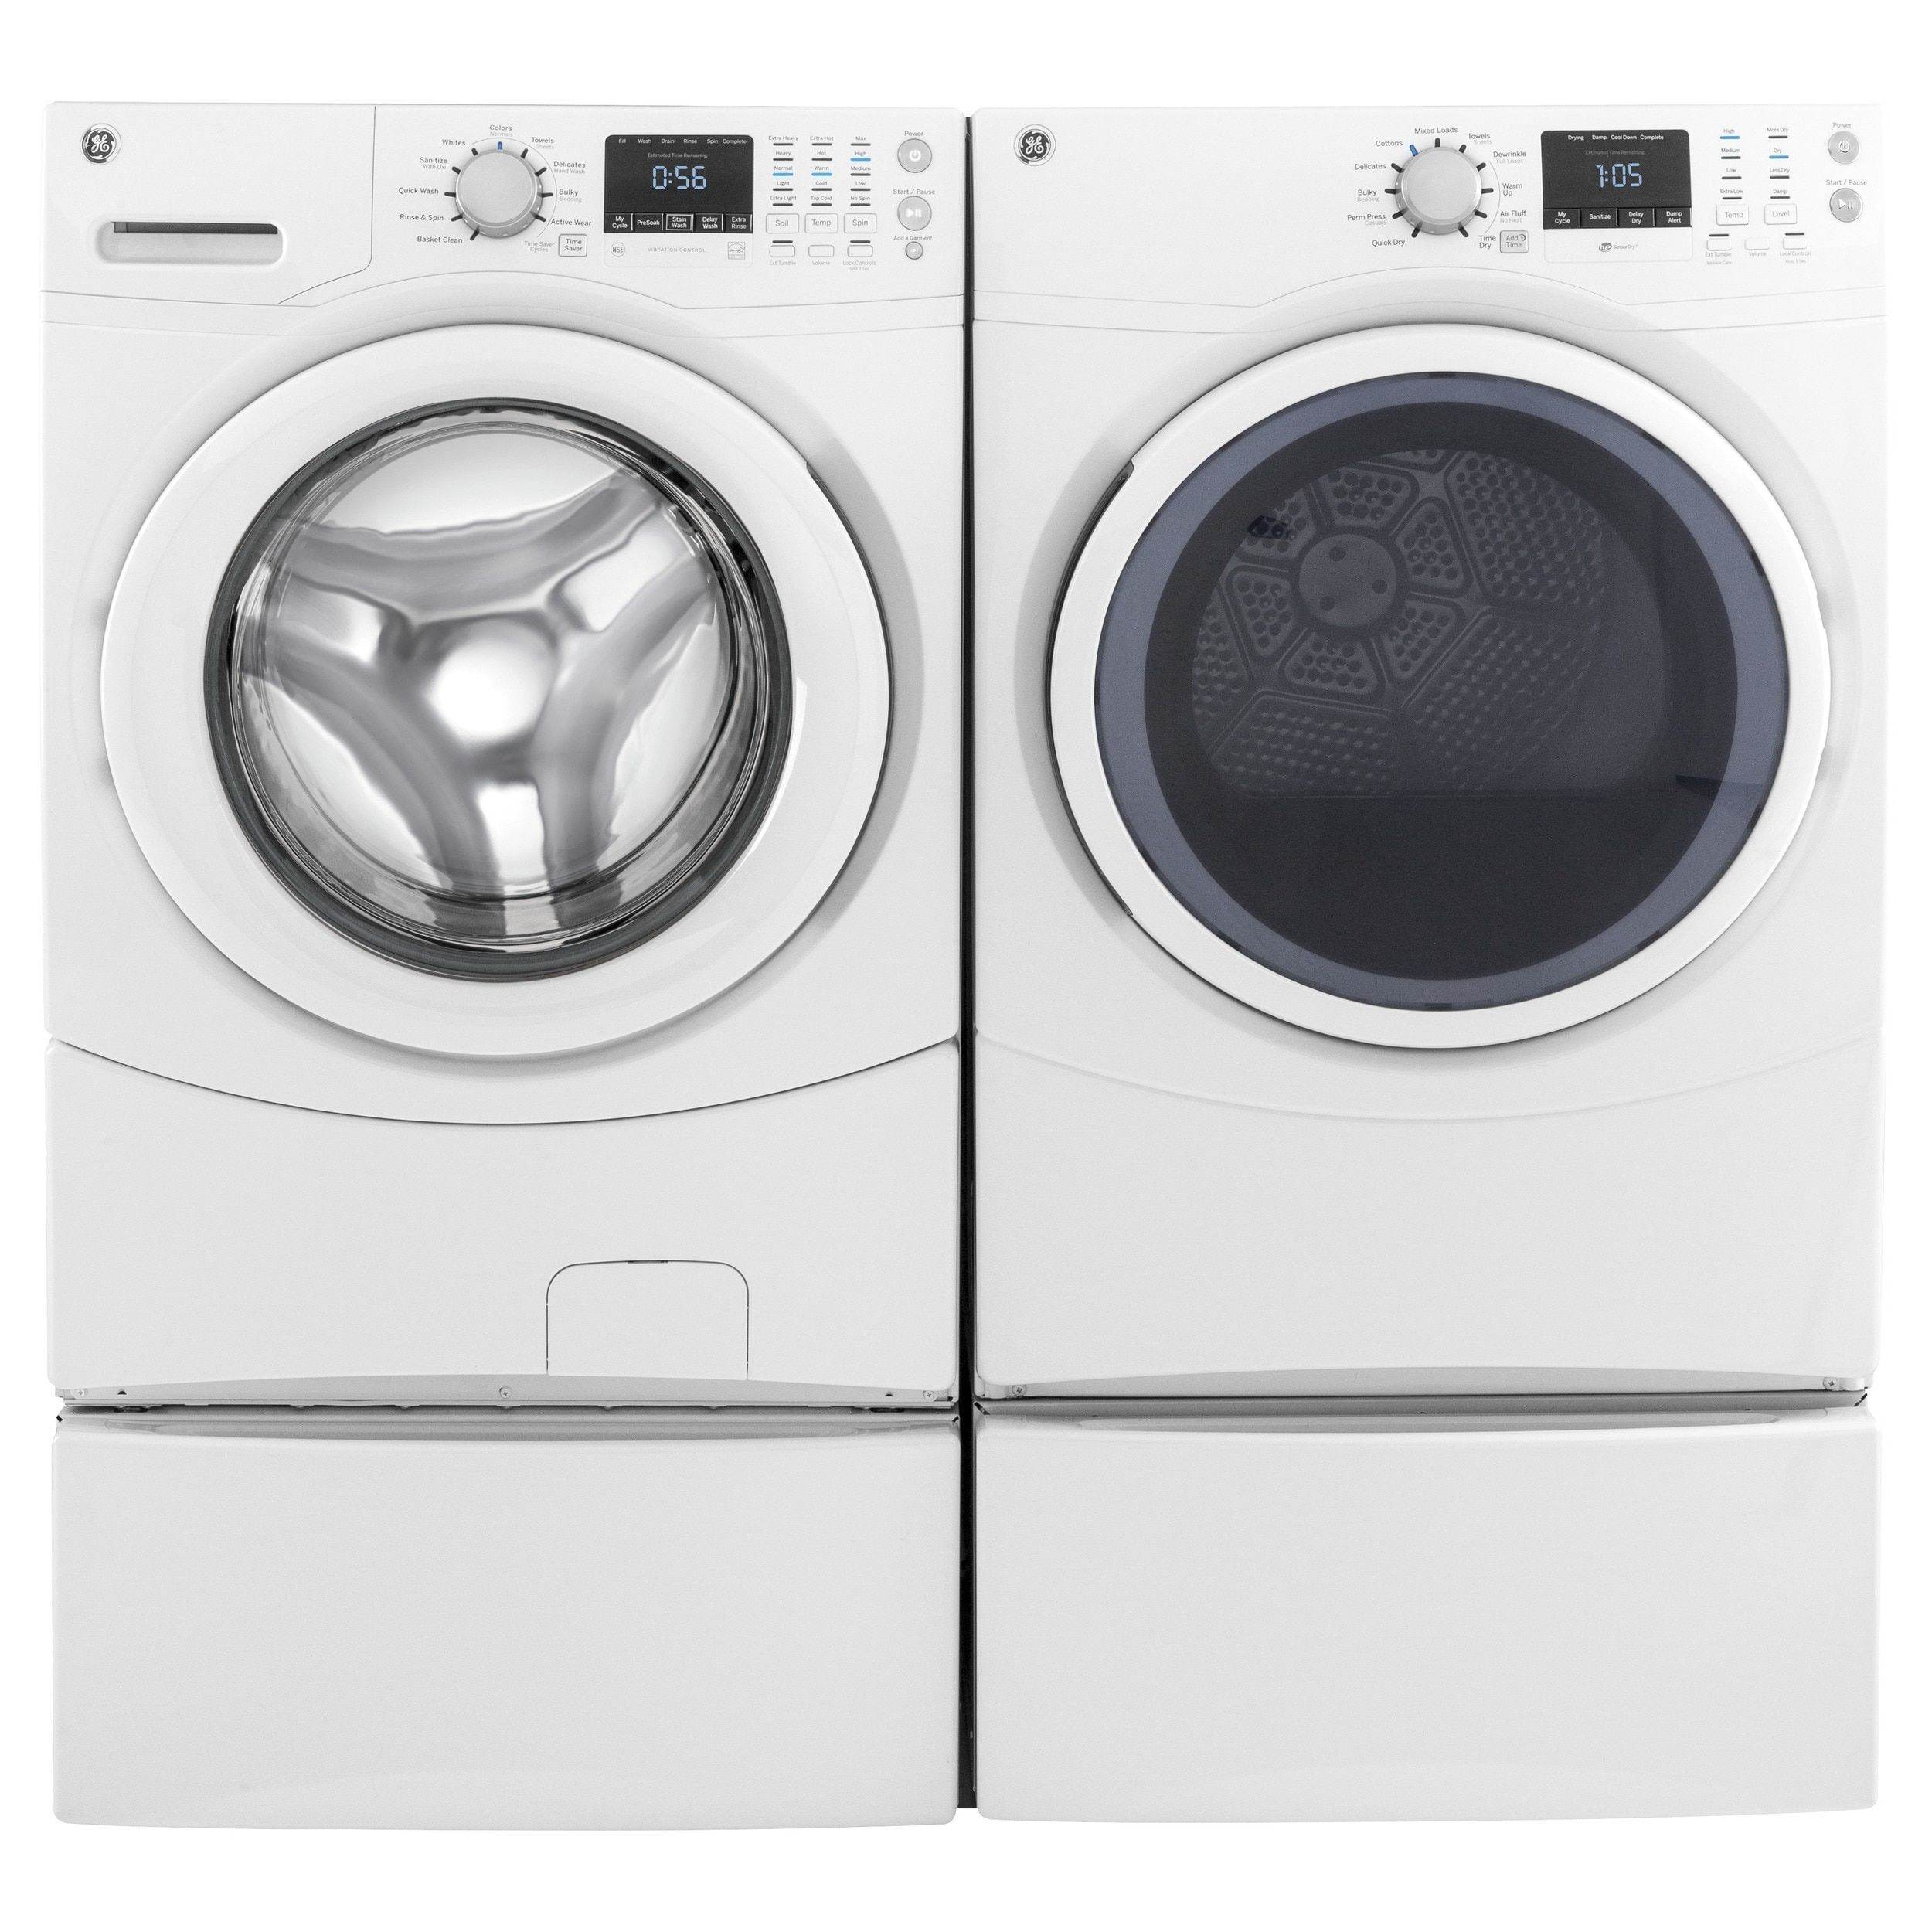 Washing Machine Sizes Cubic Feet Washing Machine Options